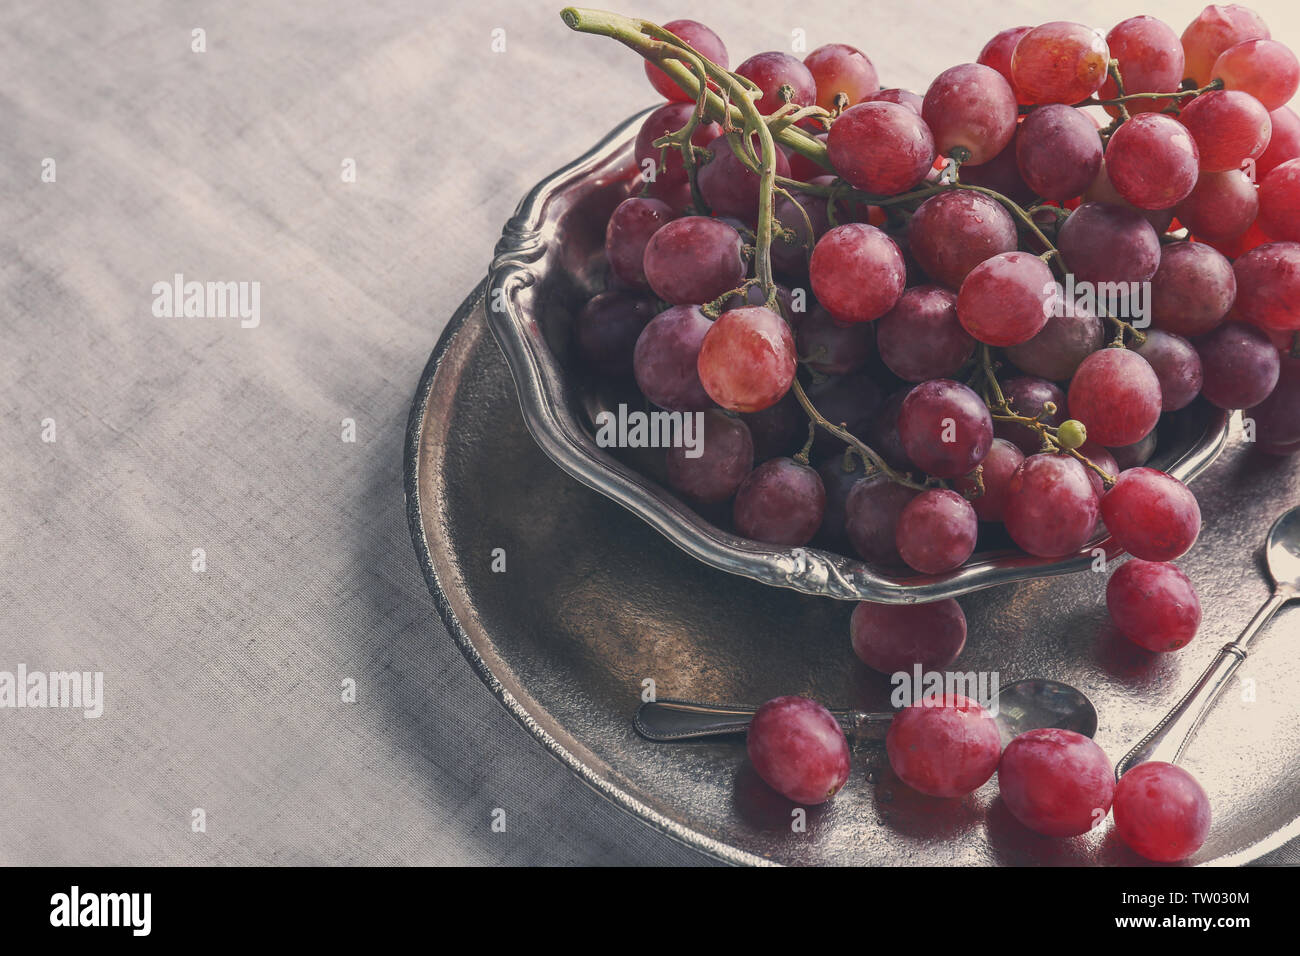 Cutlery set with plate and grapes, on linen tablecloth - Stock Image